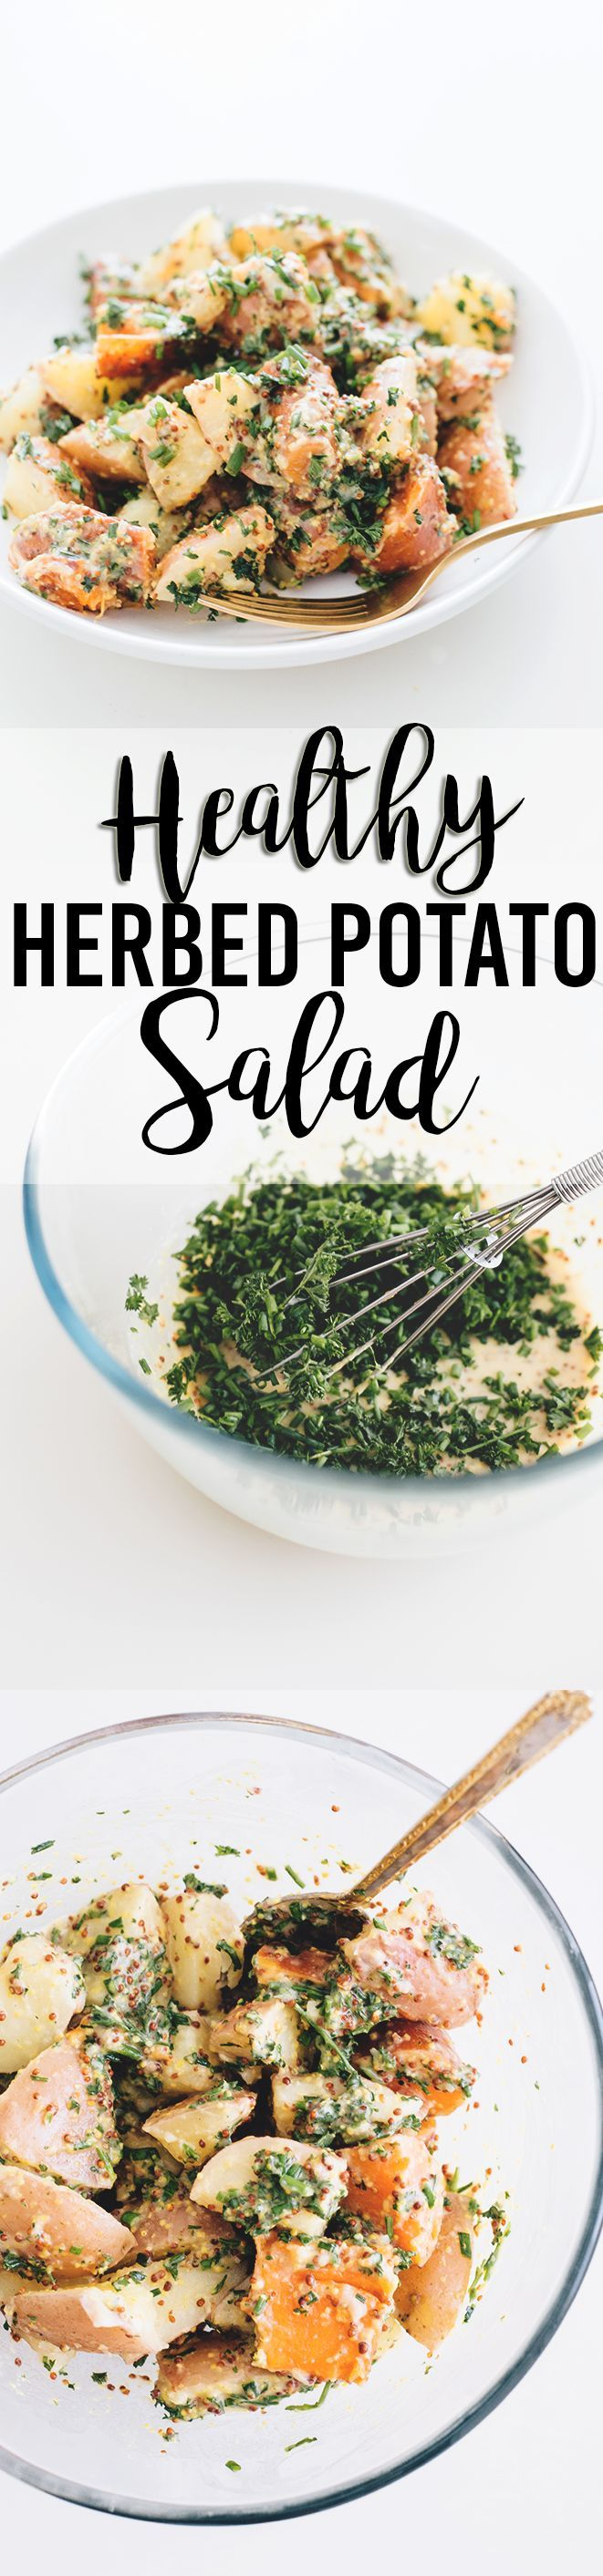 Healthy Vegan Herbed Potato Salad - a delicious salad loaded with Potatoes, Sweet Potatoes and a tangy Mustard and Herb Dressing. #vegan #healthy #delicious #potatosalad #herbs #simple #quick #veganrecipes #plantbased #simple #easy